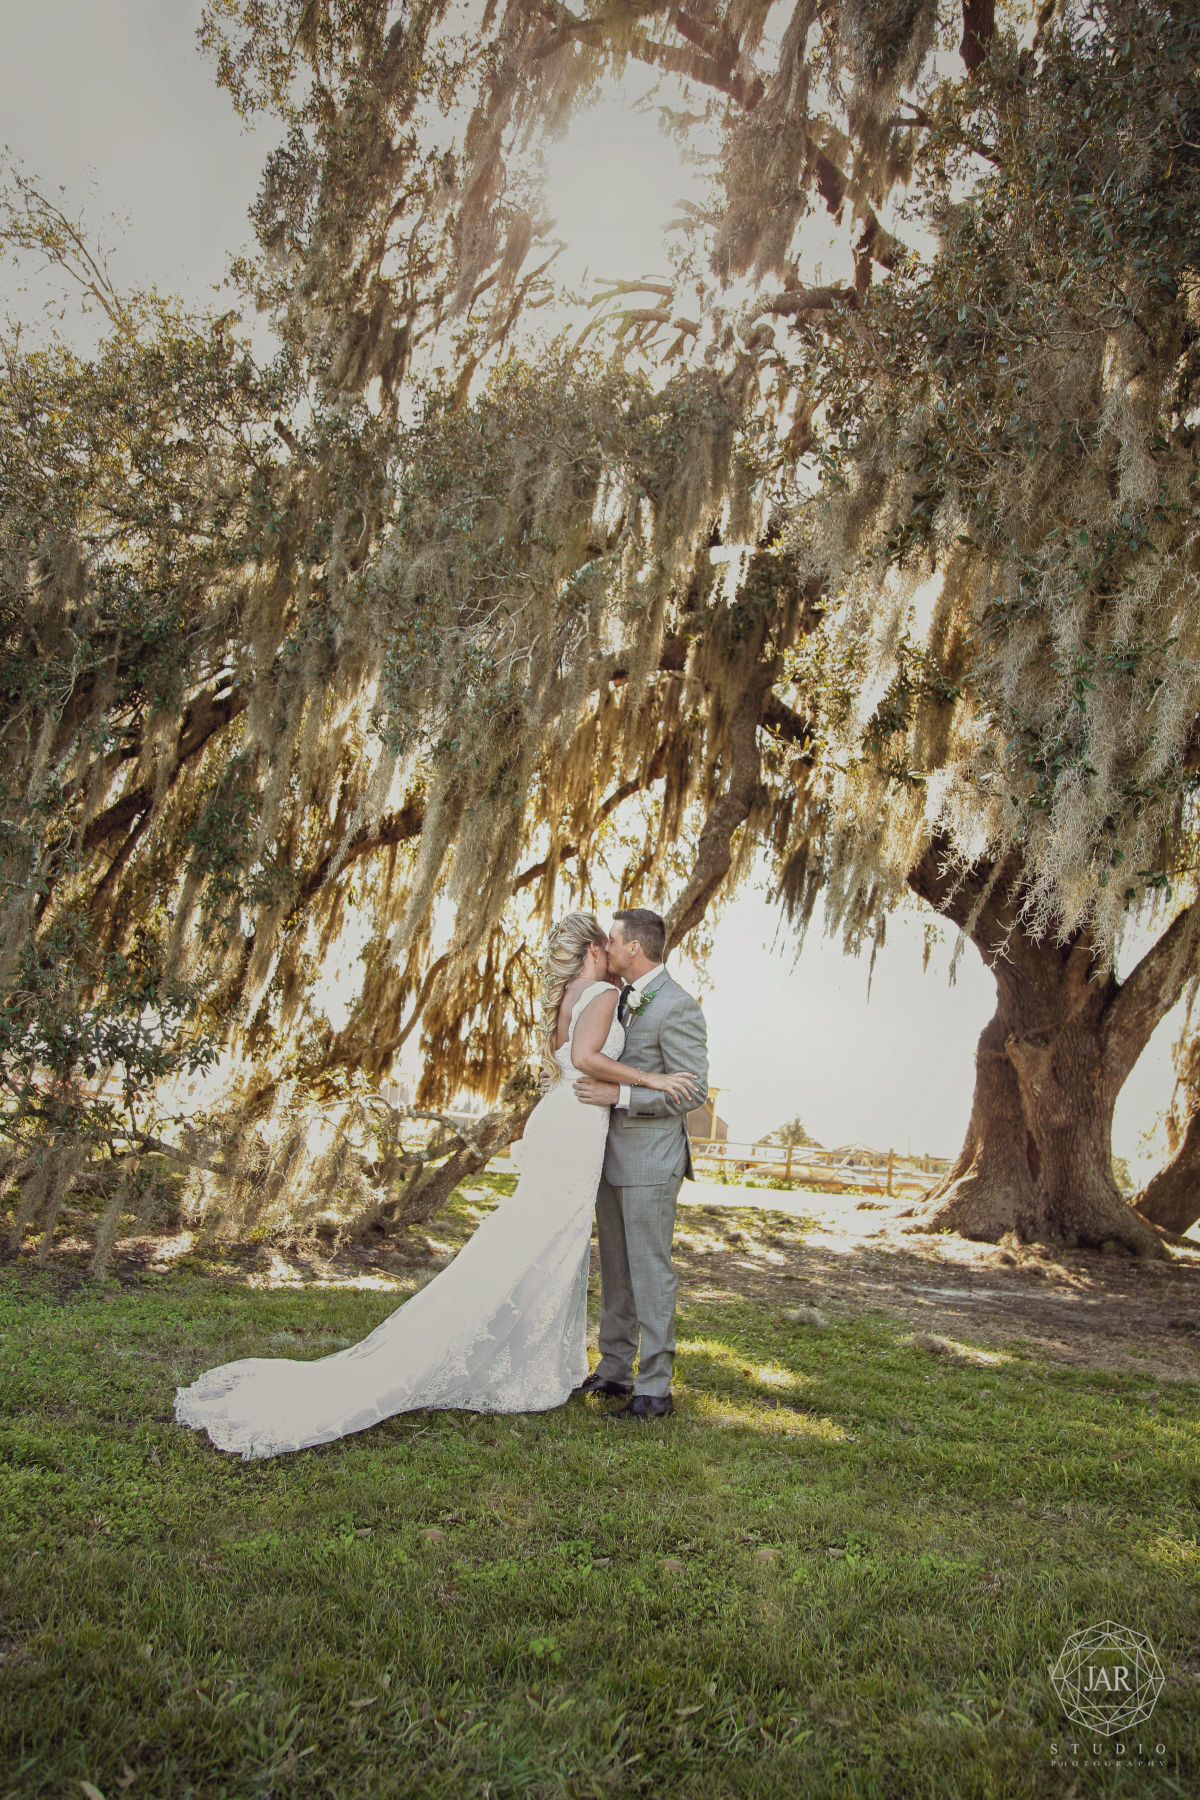 08-park-florida-trees-wedding-romantic-jarstudio.JPG